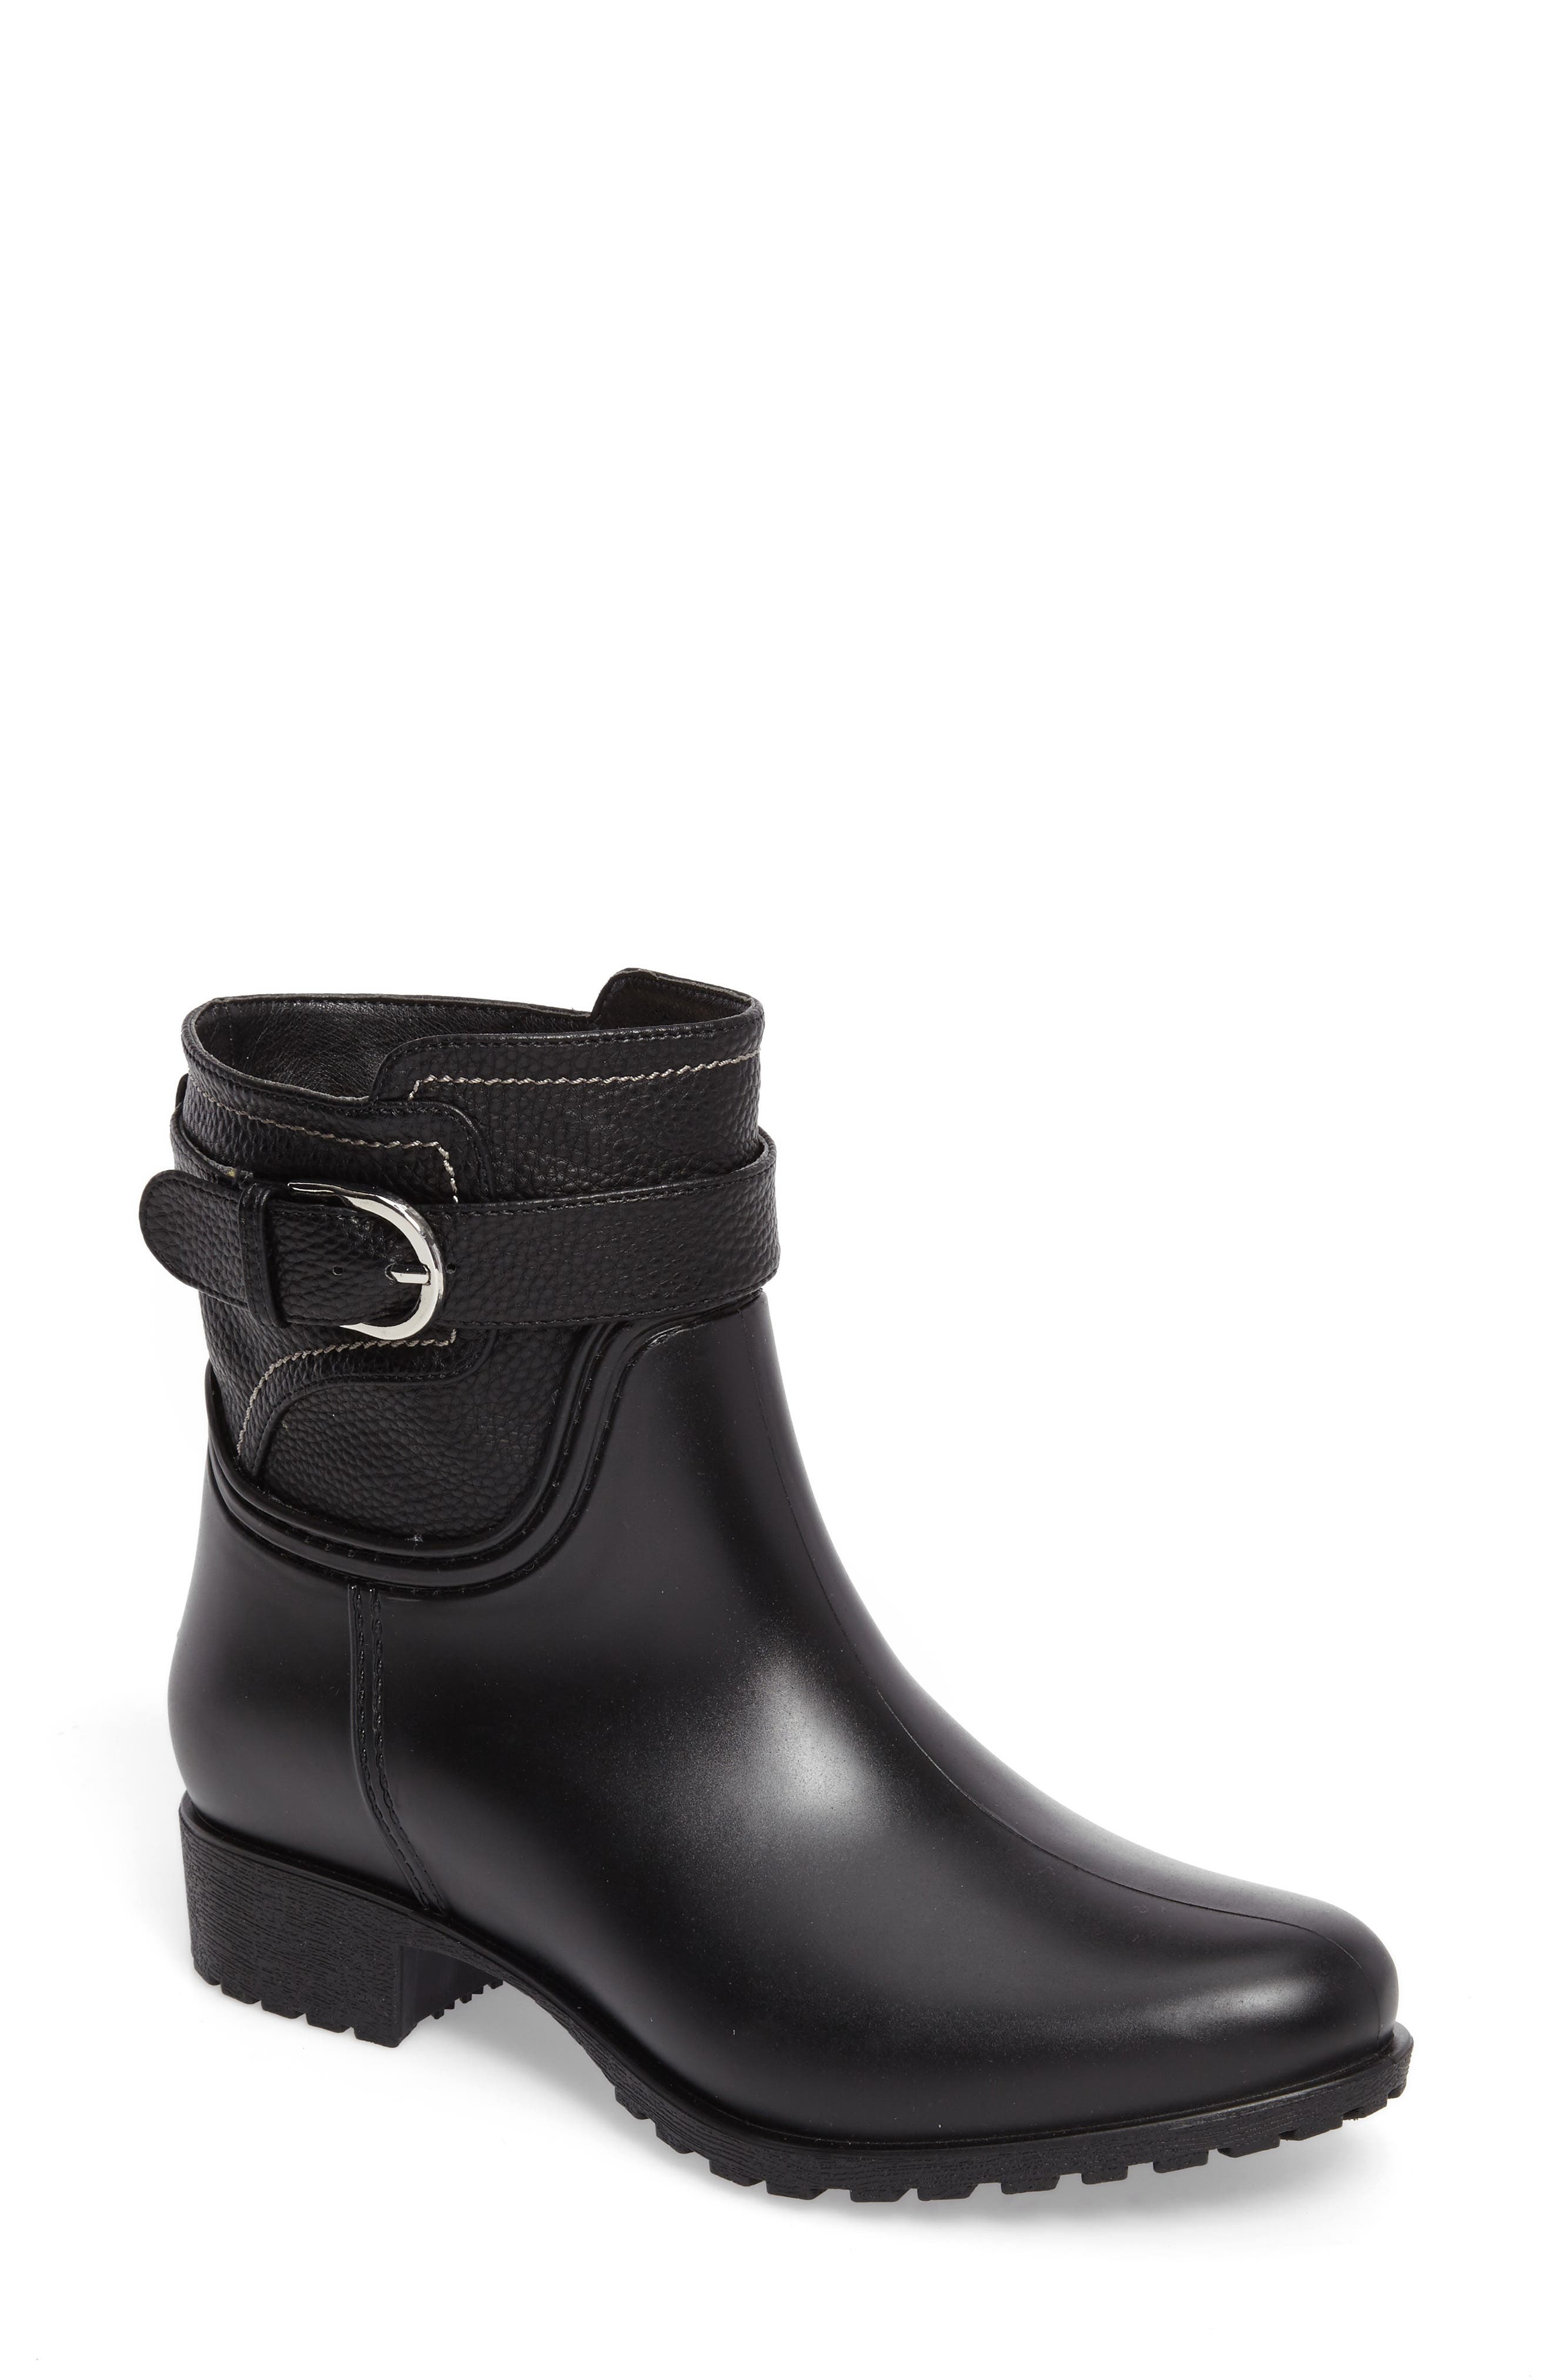 Bowie Faux Water Resistant Mid Boot,                             Main thumbnail 1, color,                             001